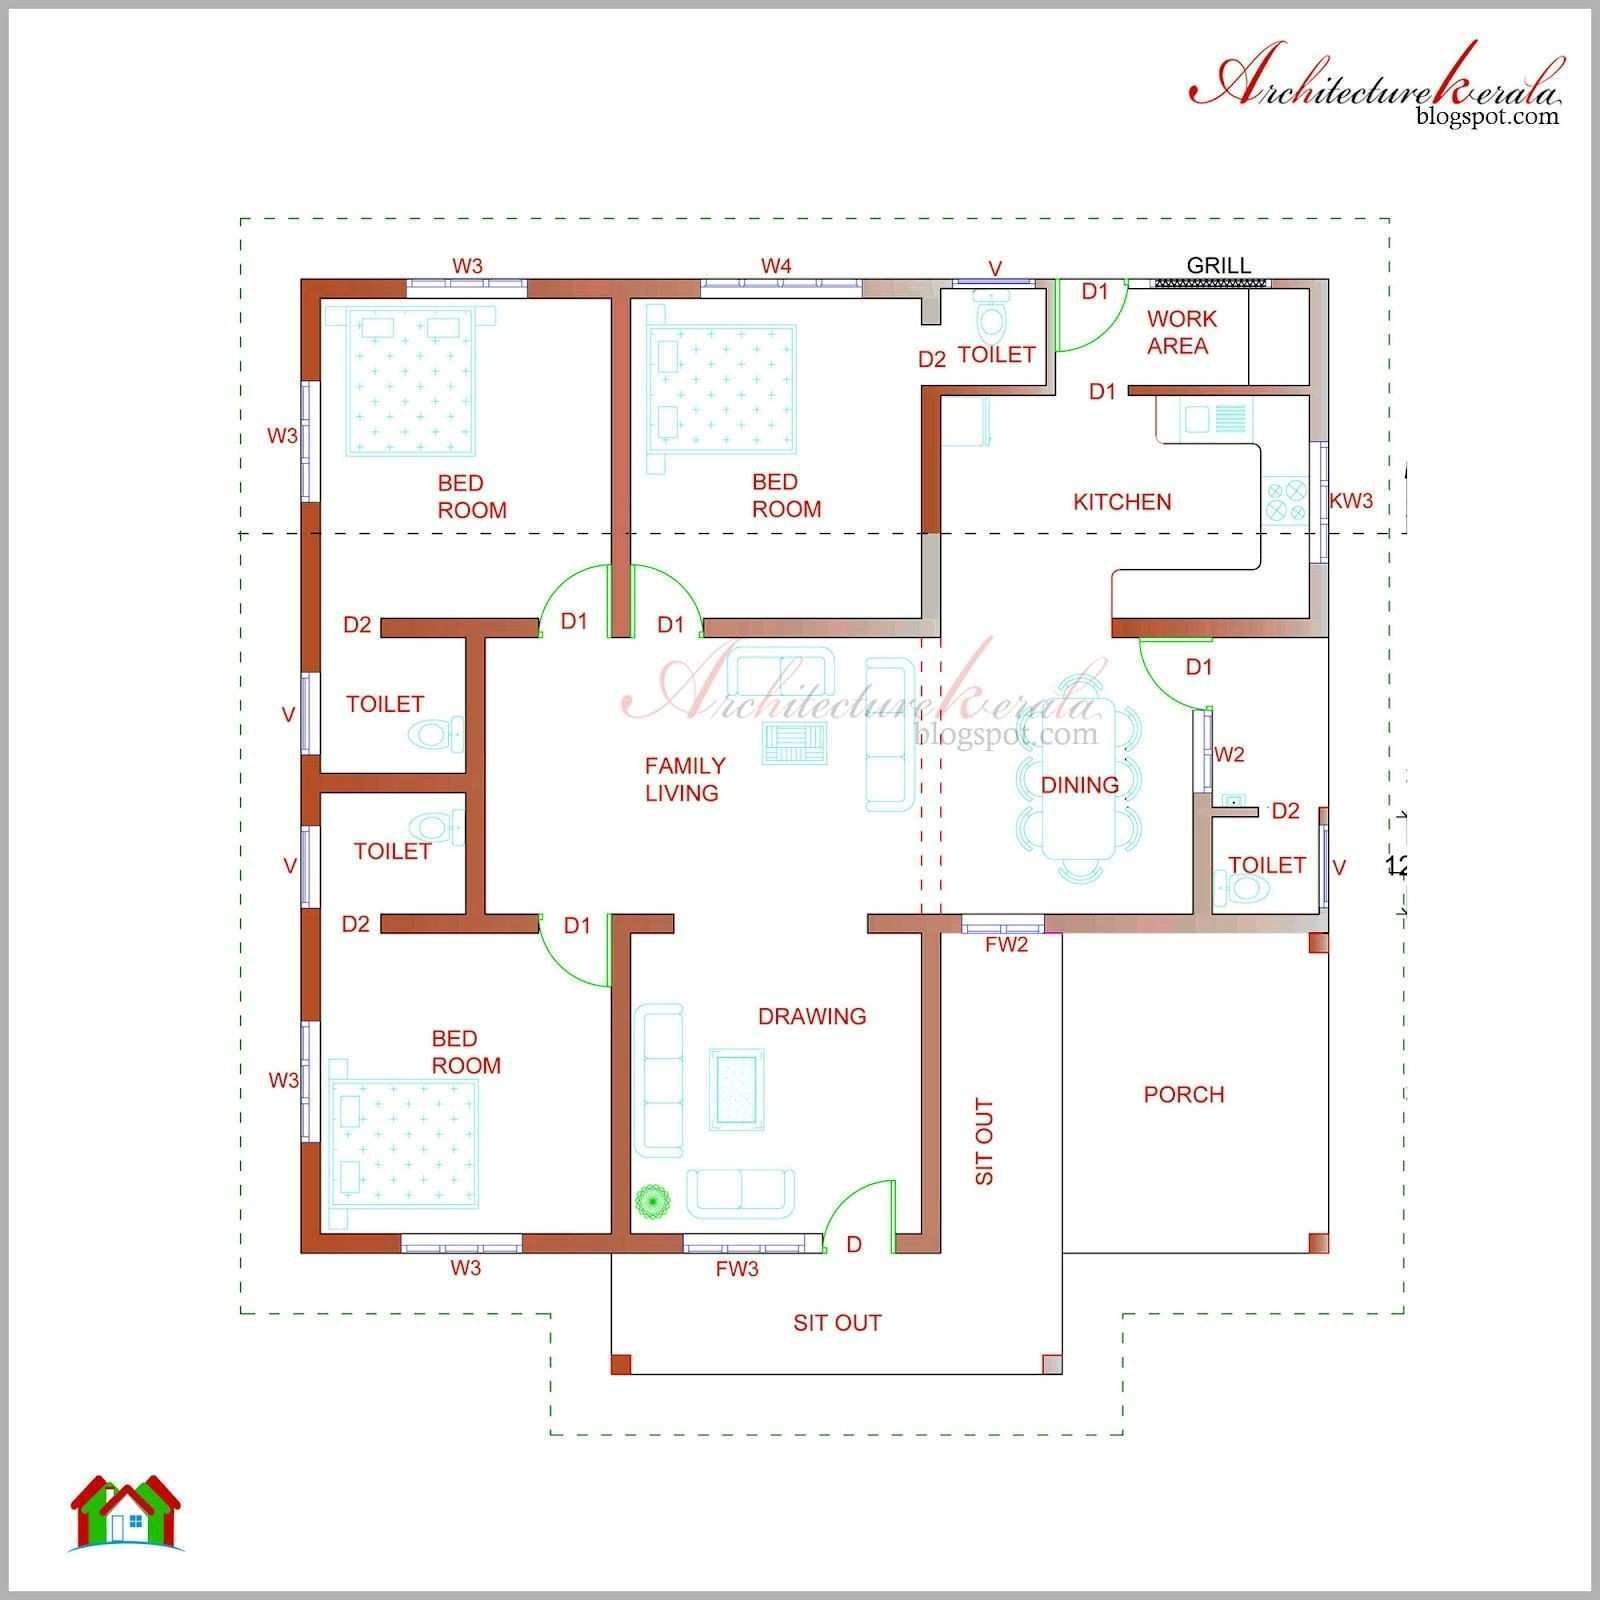 5 Bedroom Home Plans Home Still Plans Awesome Index Wiki 0 0d Home